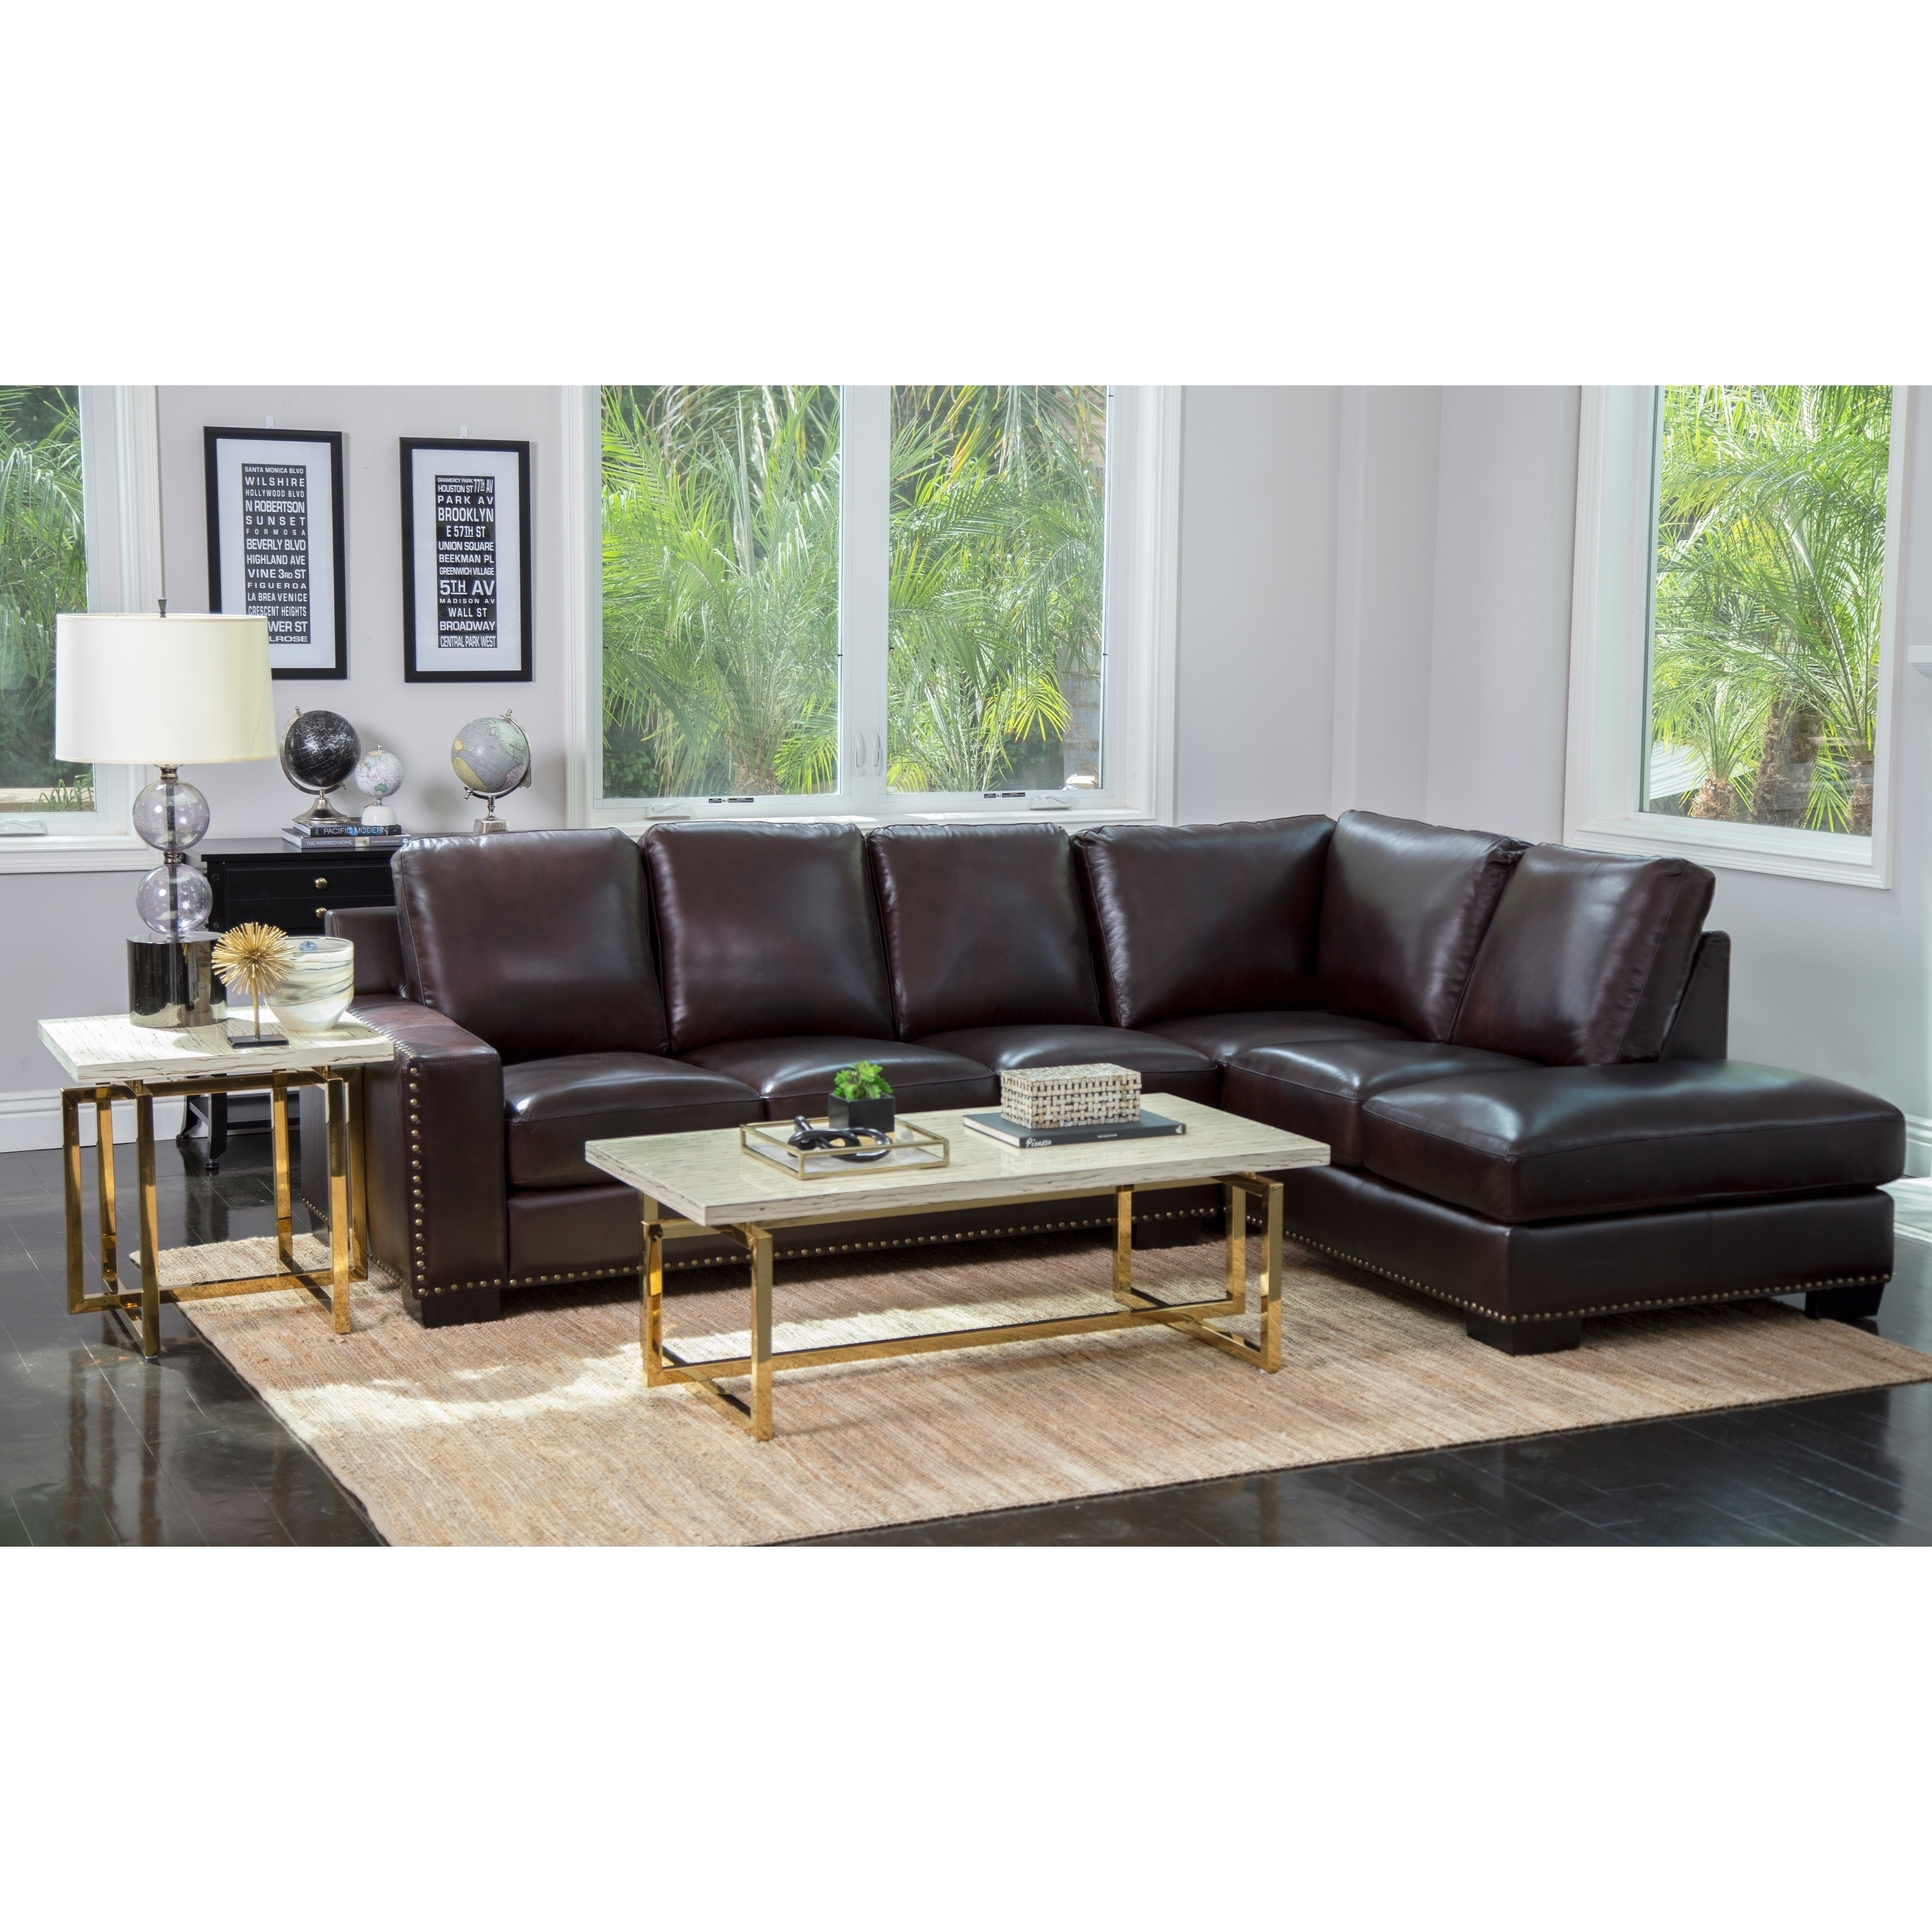 Exceptionnel Abbyson Monaco Brown Top Grain Leather Sectional Sofa